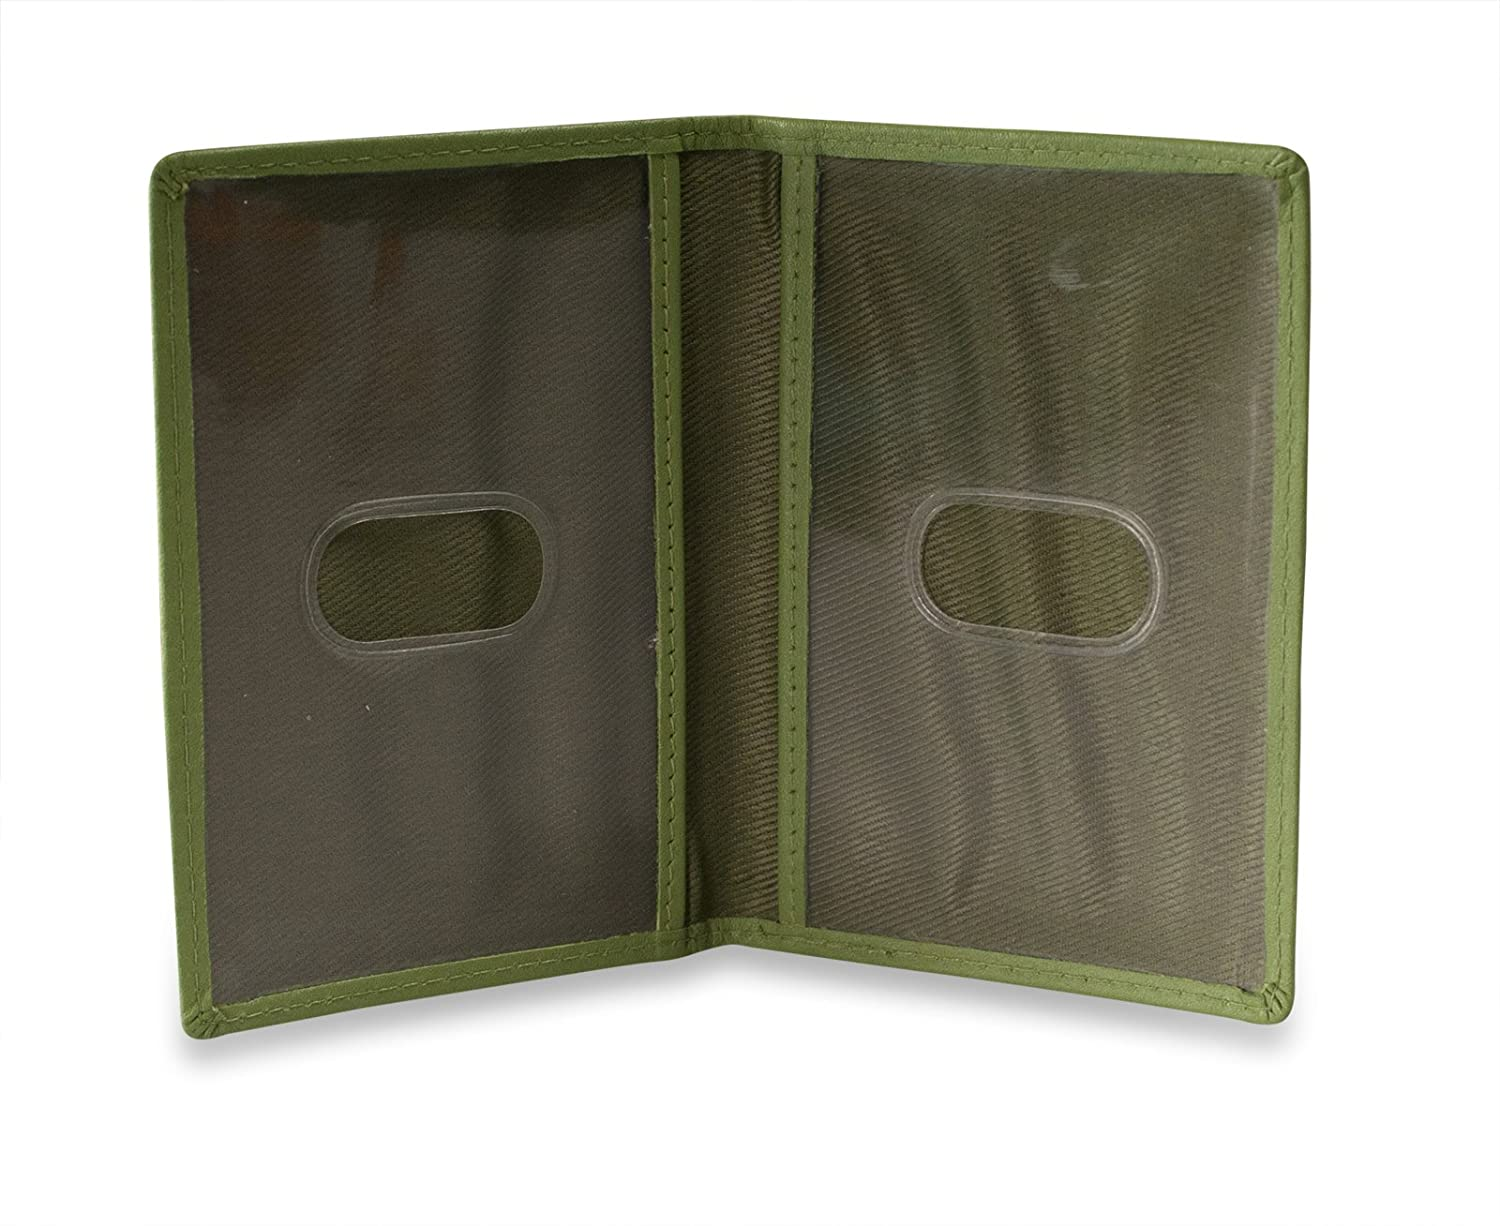 Brunhide Real Leather Travel Card Holder Wallet for Bus Pass Rail ID # 236-300, Garden Green #236-300